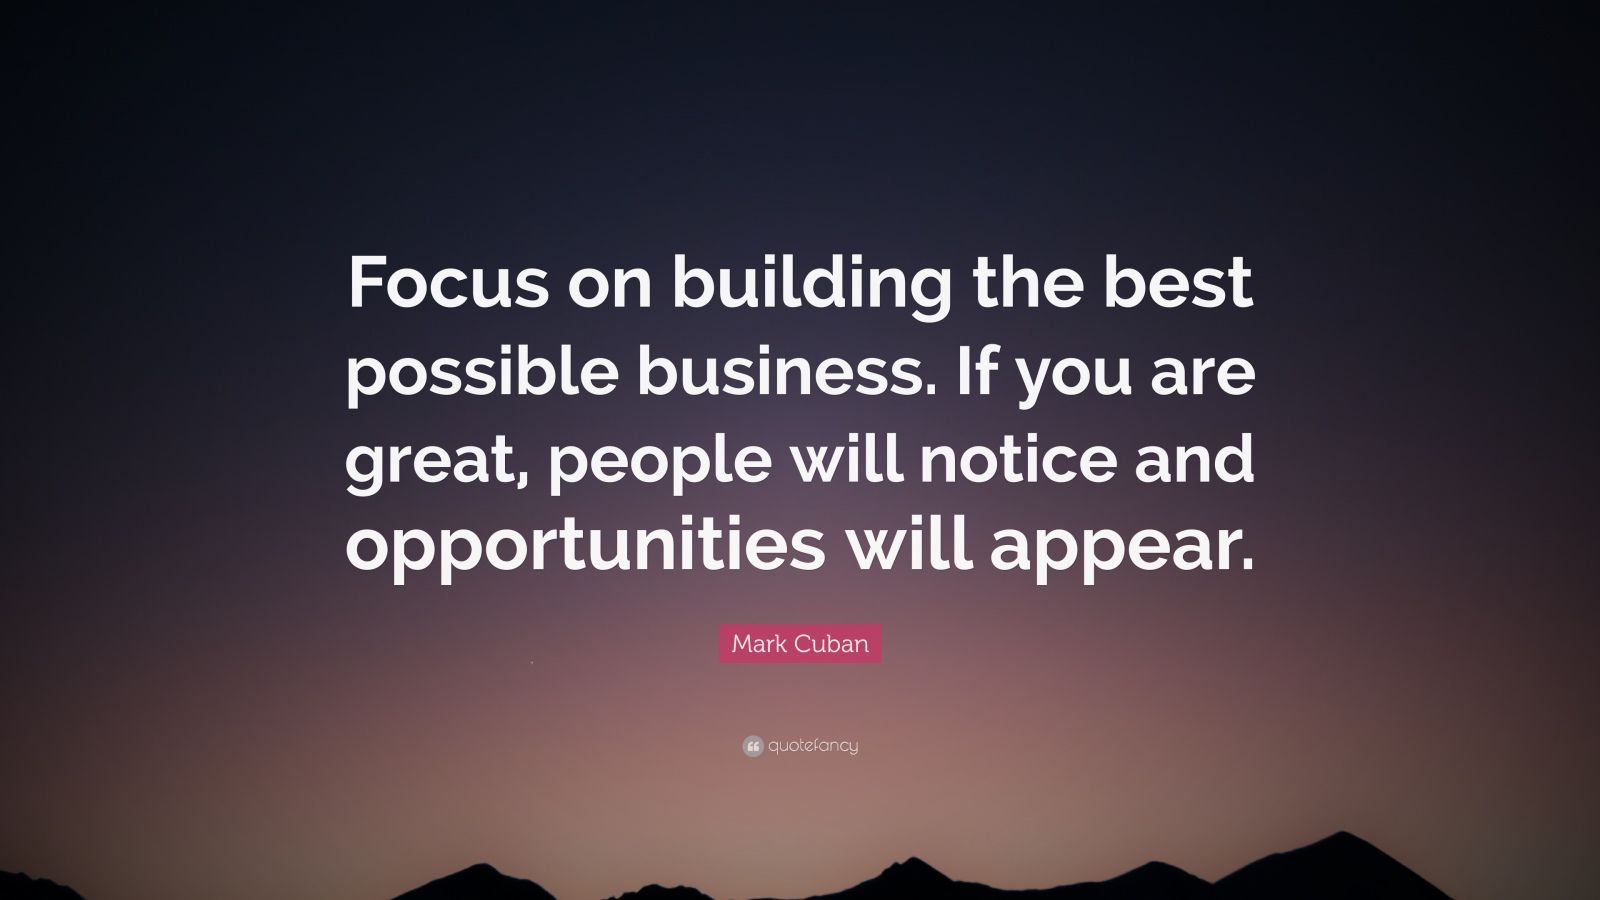 """Mark Cuban Quote: """"Focus on building the best possible business. If you are great, people will notice and opportunities will appear."""""""